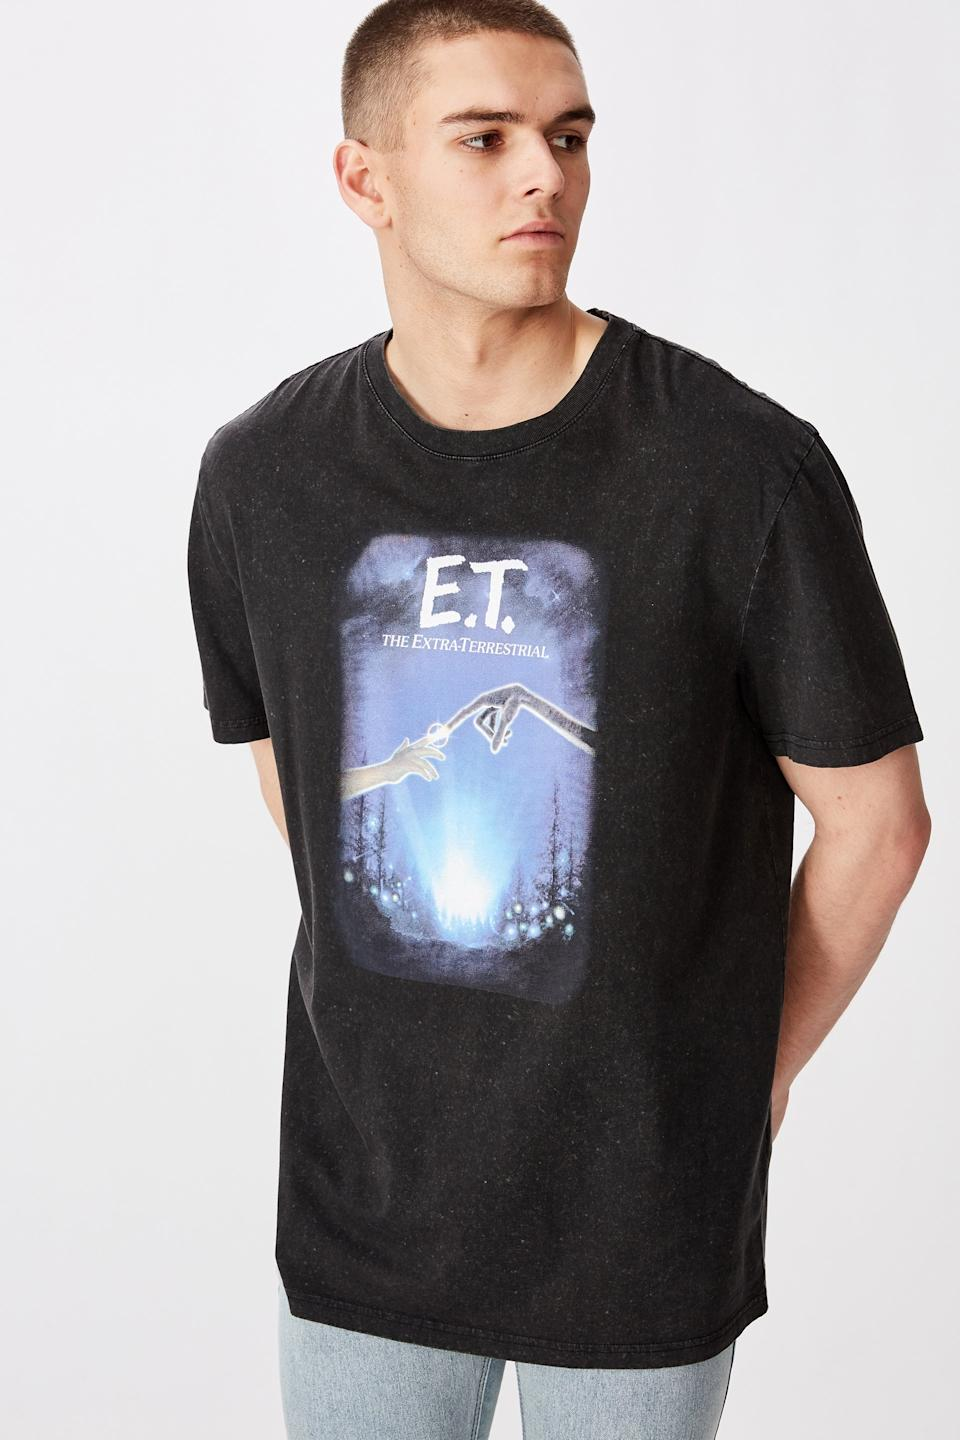 The Factorie Regular License T Shirt in E.T. print, $17.46 (RRP $24.95) from Cotton On. Photo: Cotton On.